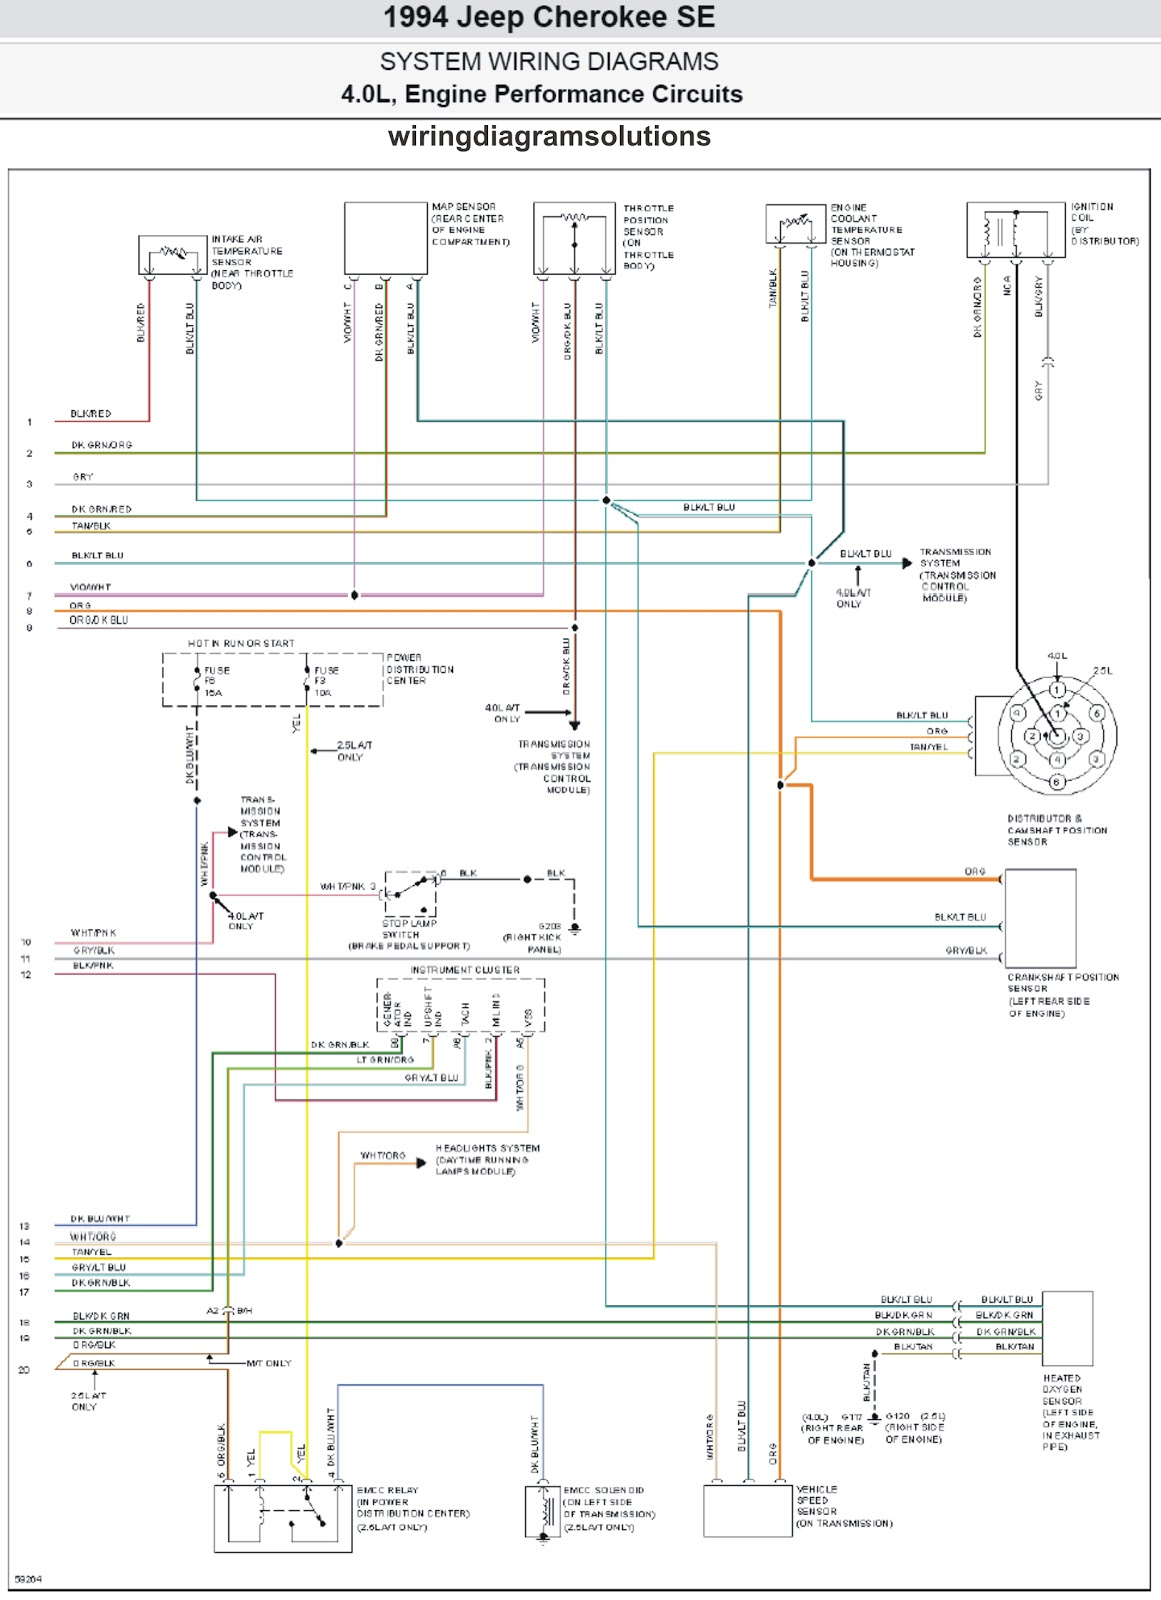 DIAGRAM] 2002 Jeep Cherokee Wiring Diagram FULL Version HD Quality Wiring  Diagram - LYLE-DIAGRAM.RADD.FRDiagram Database - Radd